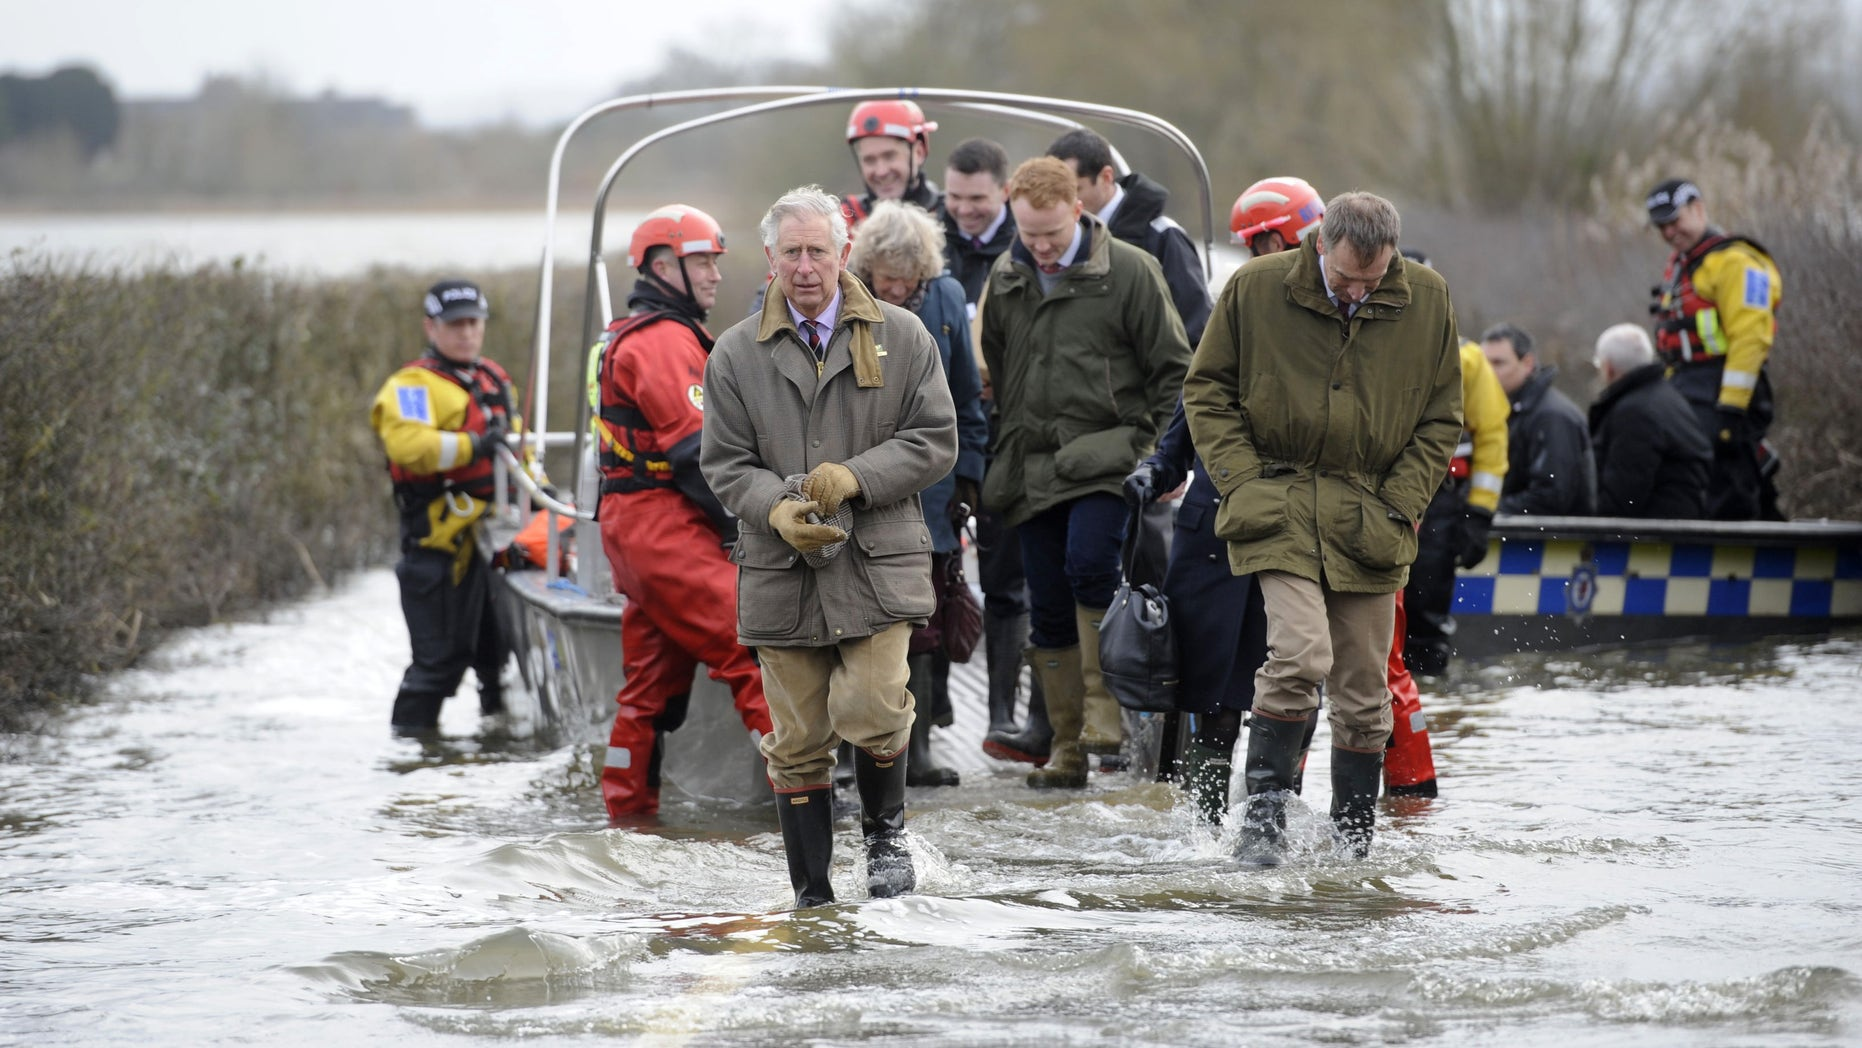 Britain's Prince Charles, centre, walks through flood water after travelling to the flood-hit community of Muchleney and meeting with a local farming family at Thorney Moor Farm, to see the damage caused by the flood waters, Somerset, England, Tuesday, Feb. 4, 2014. (AP Photo/PA, Ben Birchall) UNITED KINGDOM OUT, NO SALES, NO ARCHIVE